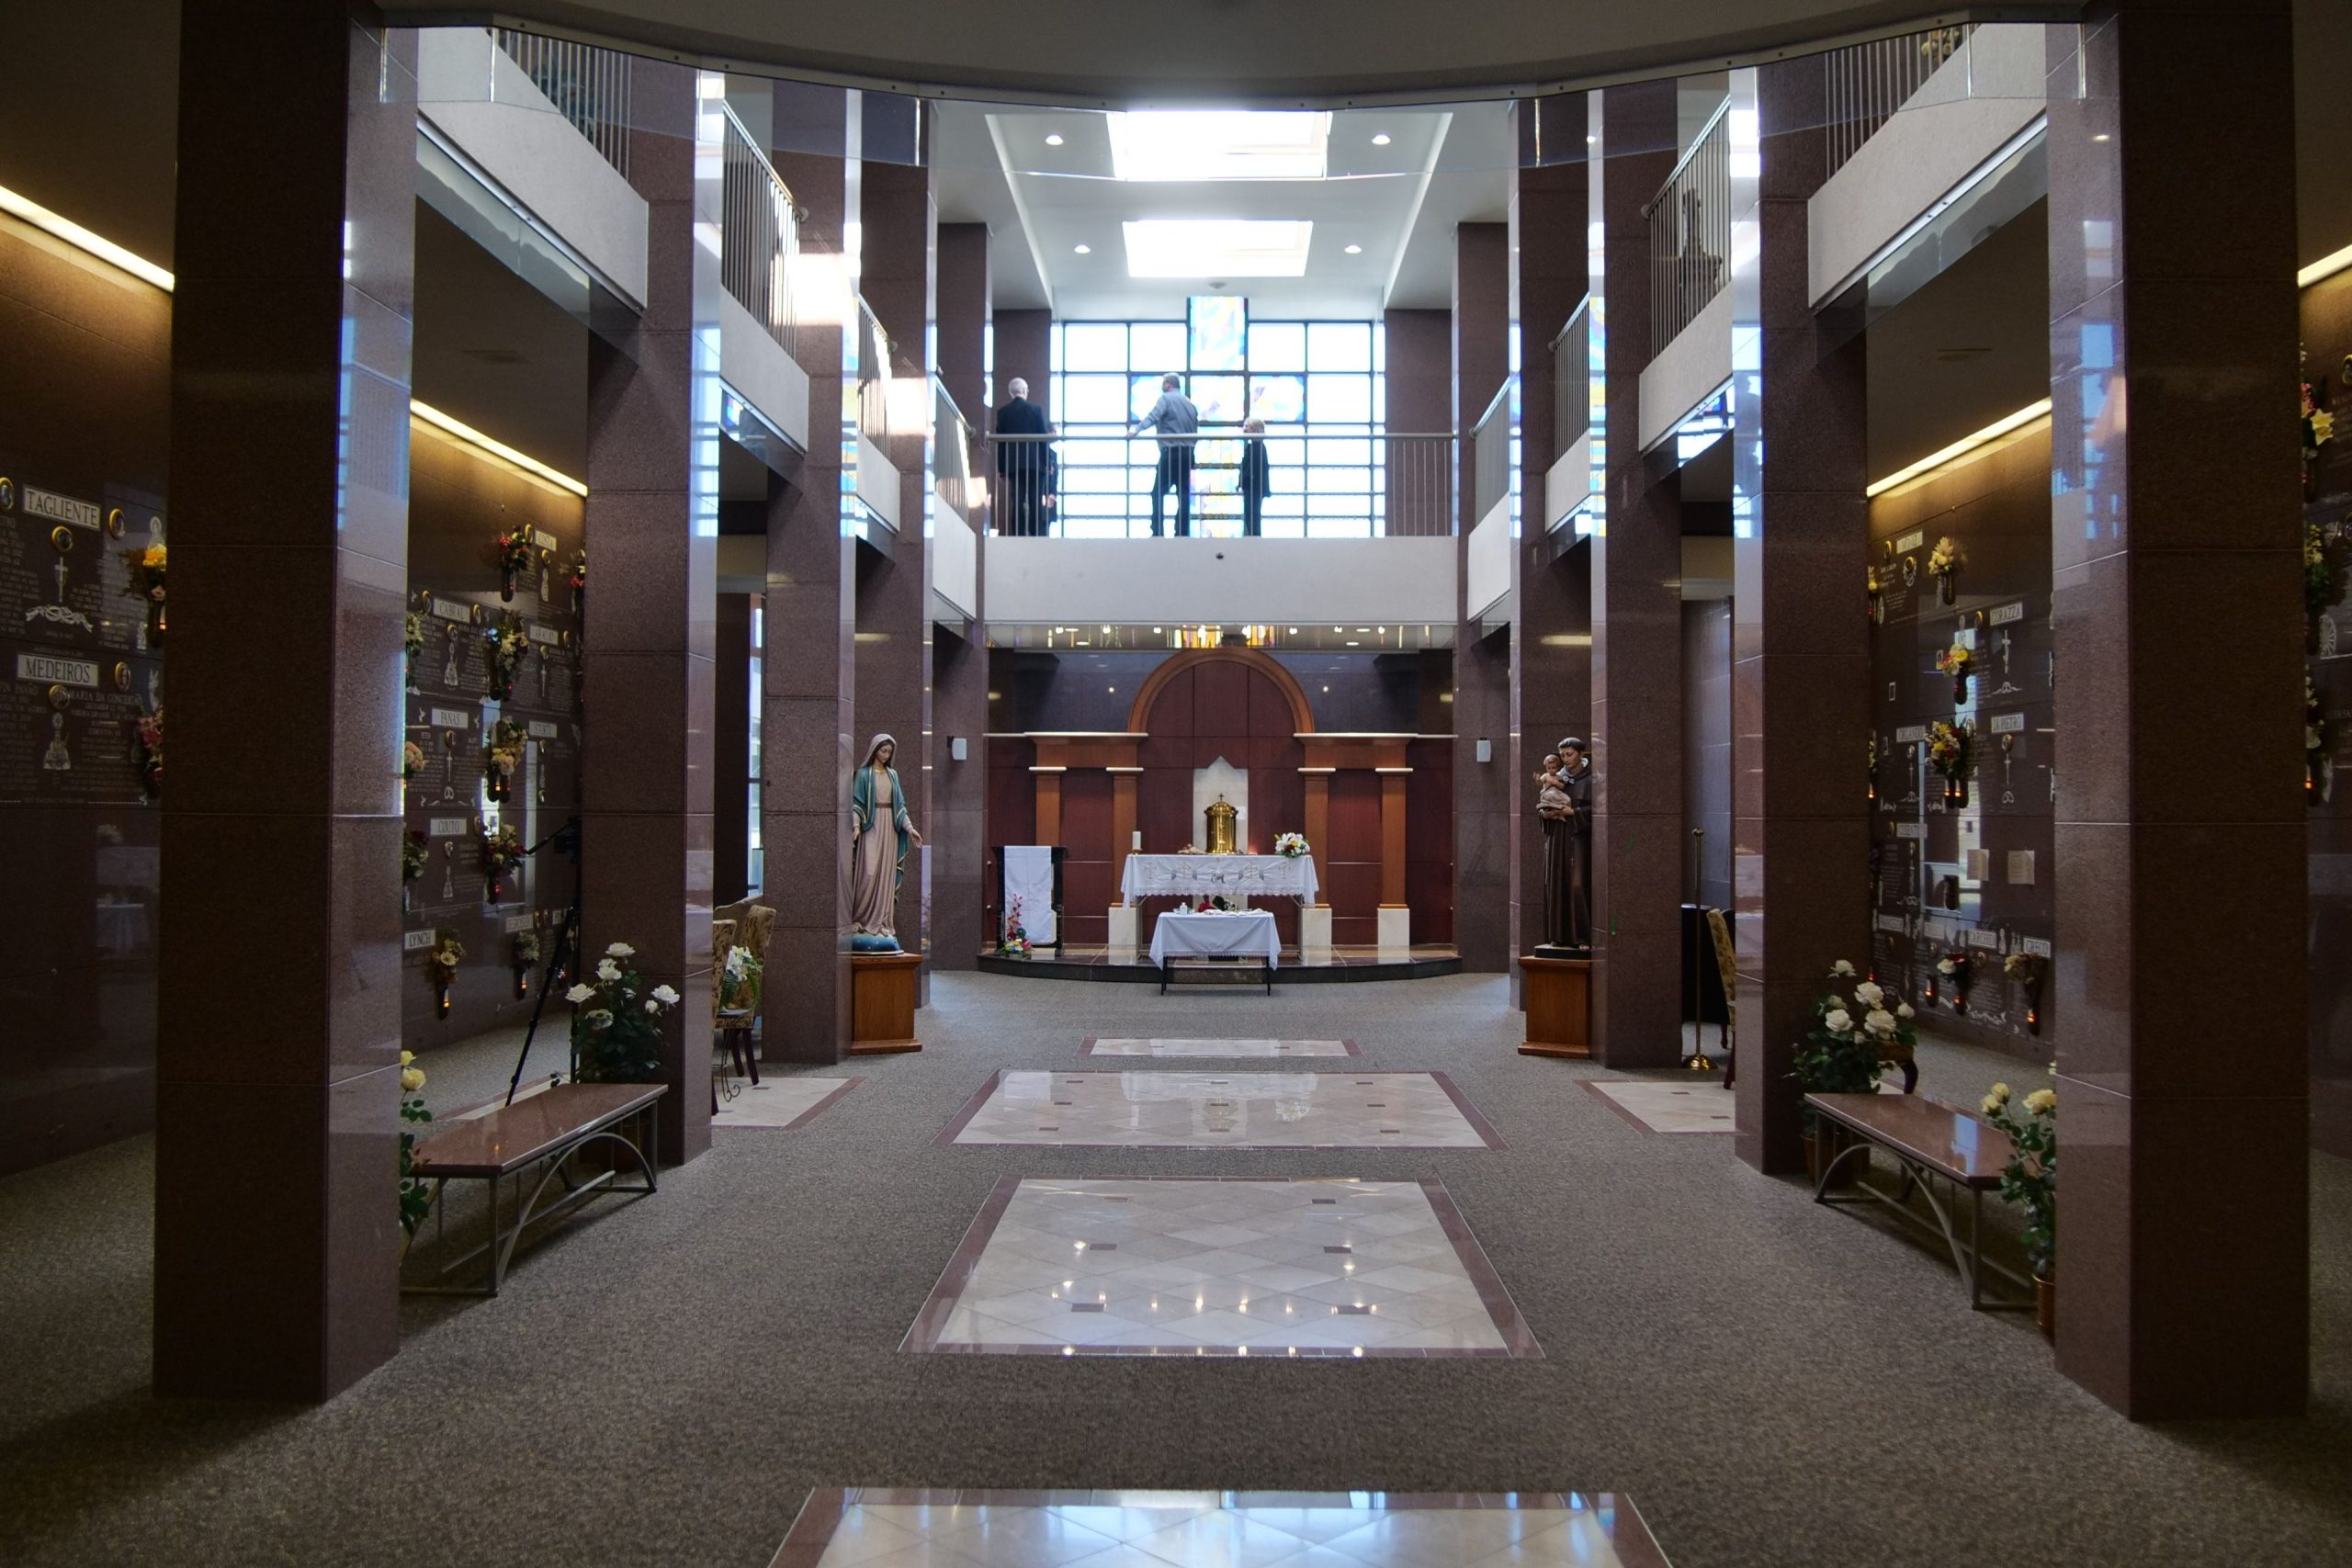 Holy Cross Mausoleum expansion enables improved services for grieving families